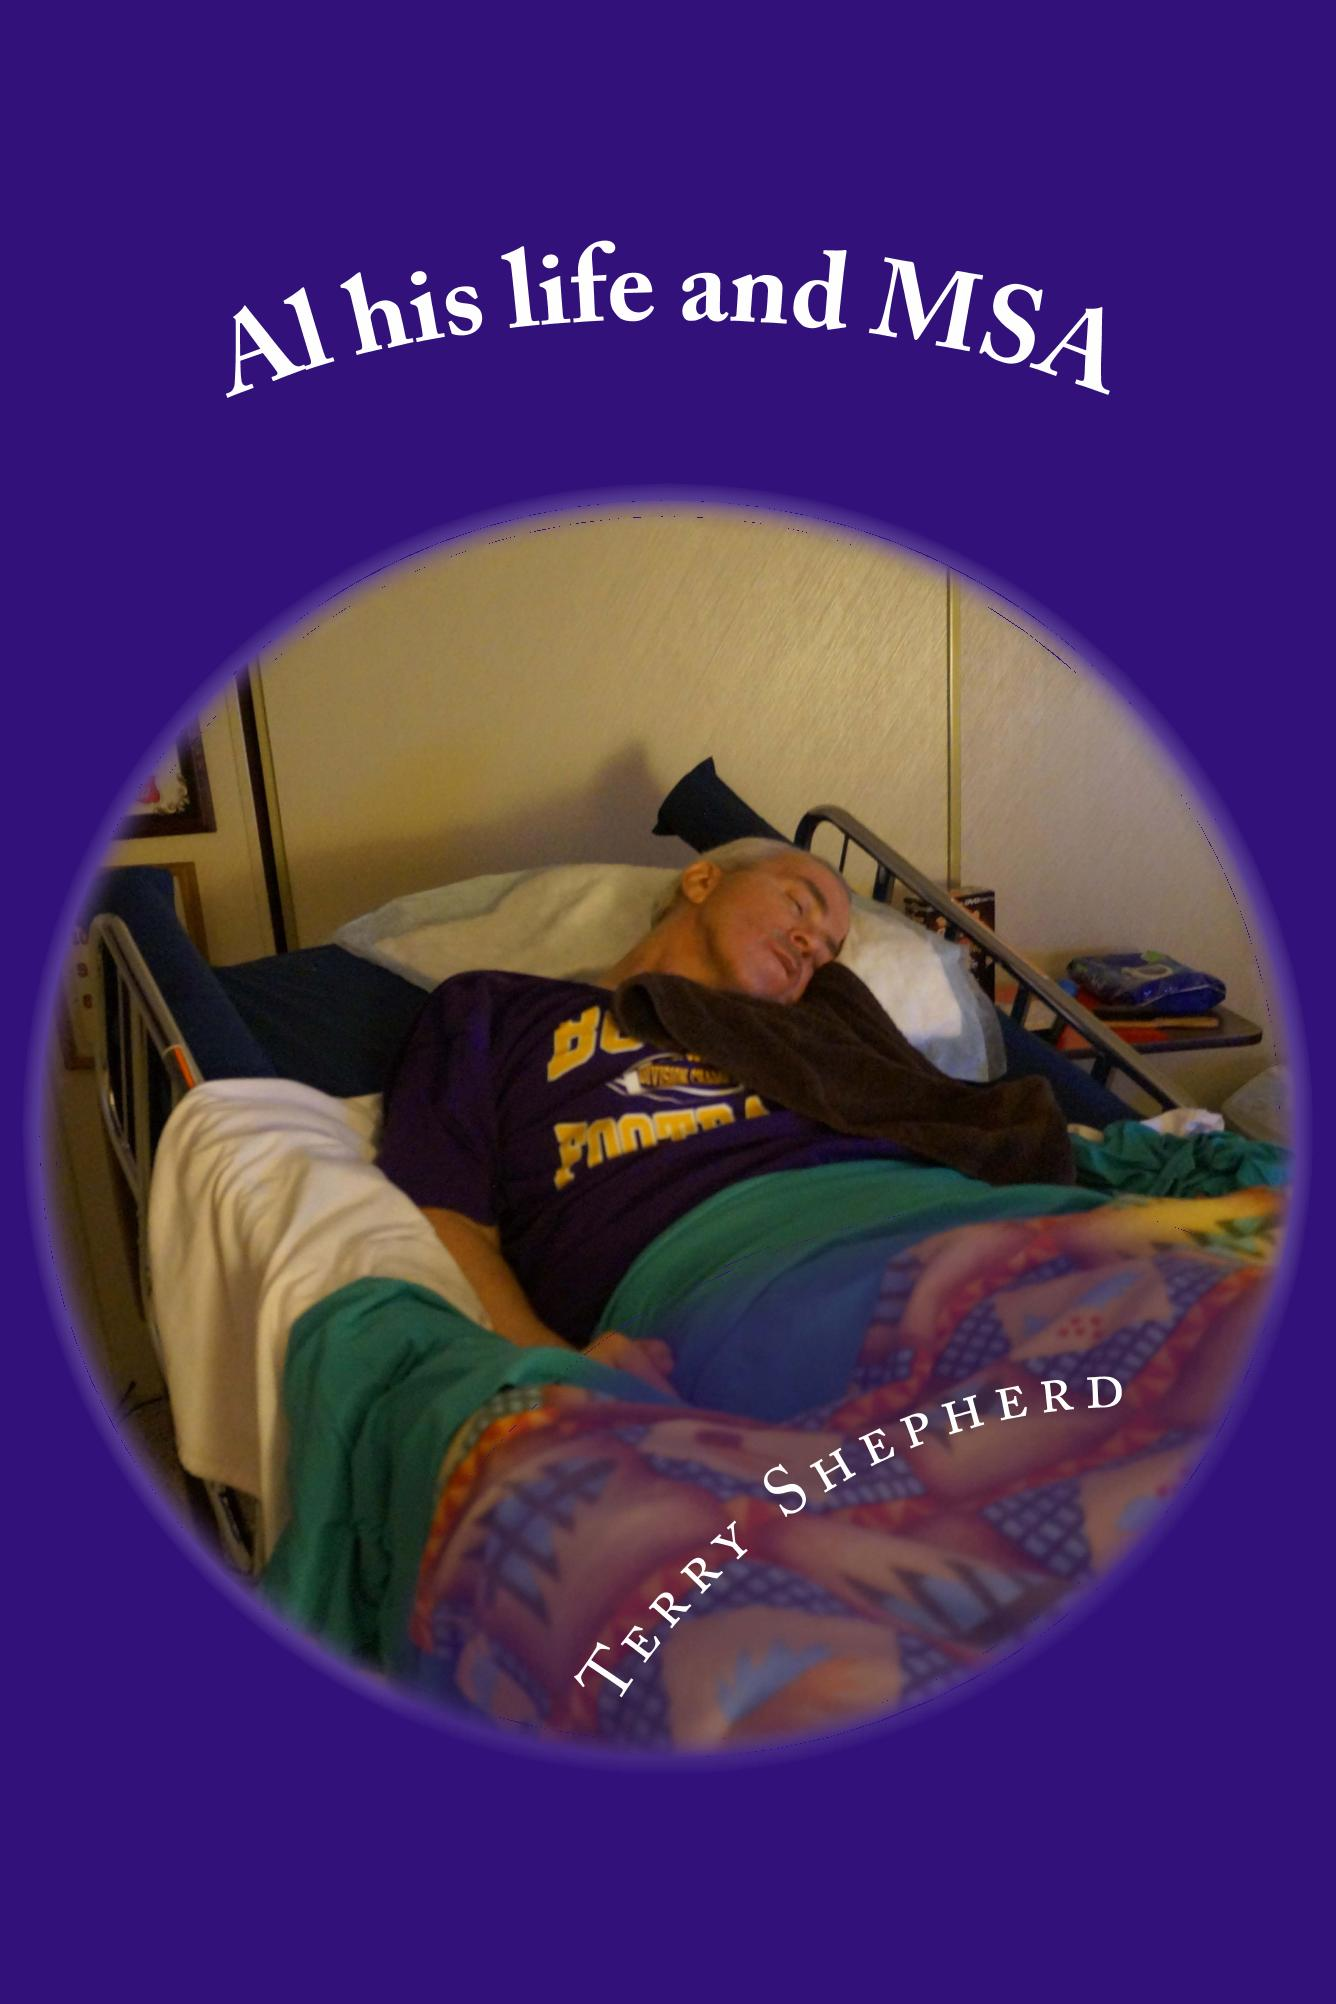 Al_his_life_and_MSA_Cover_for_Kindle